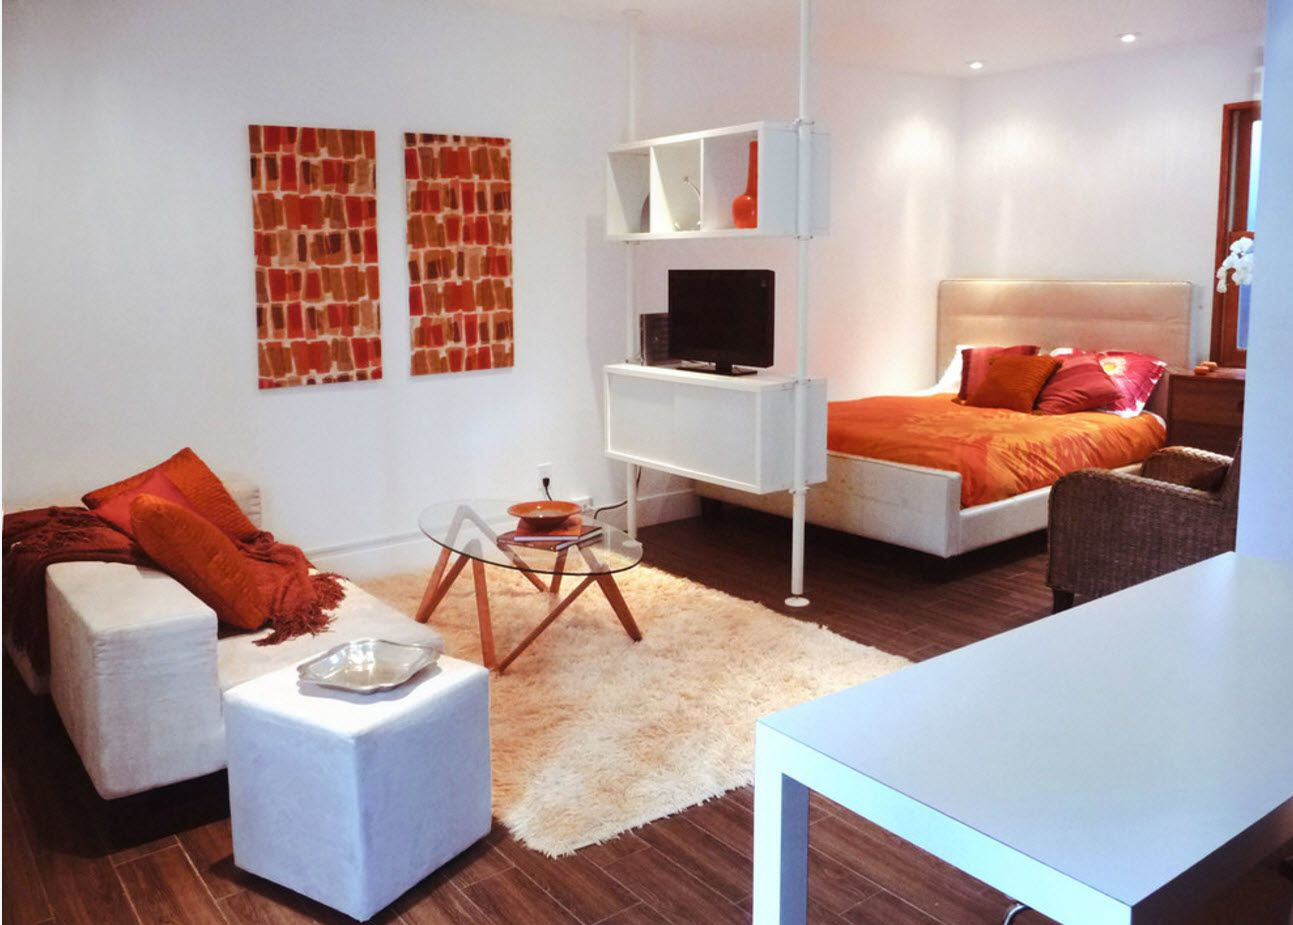 100+ Small Studio Apartment Design Ideas & Real-life Projects Photogallery. Well-done cachelor studio with bright orange accents